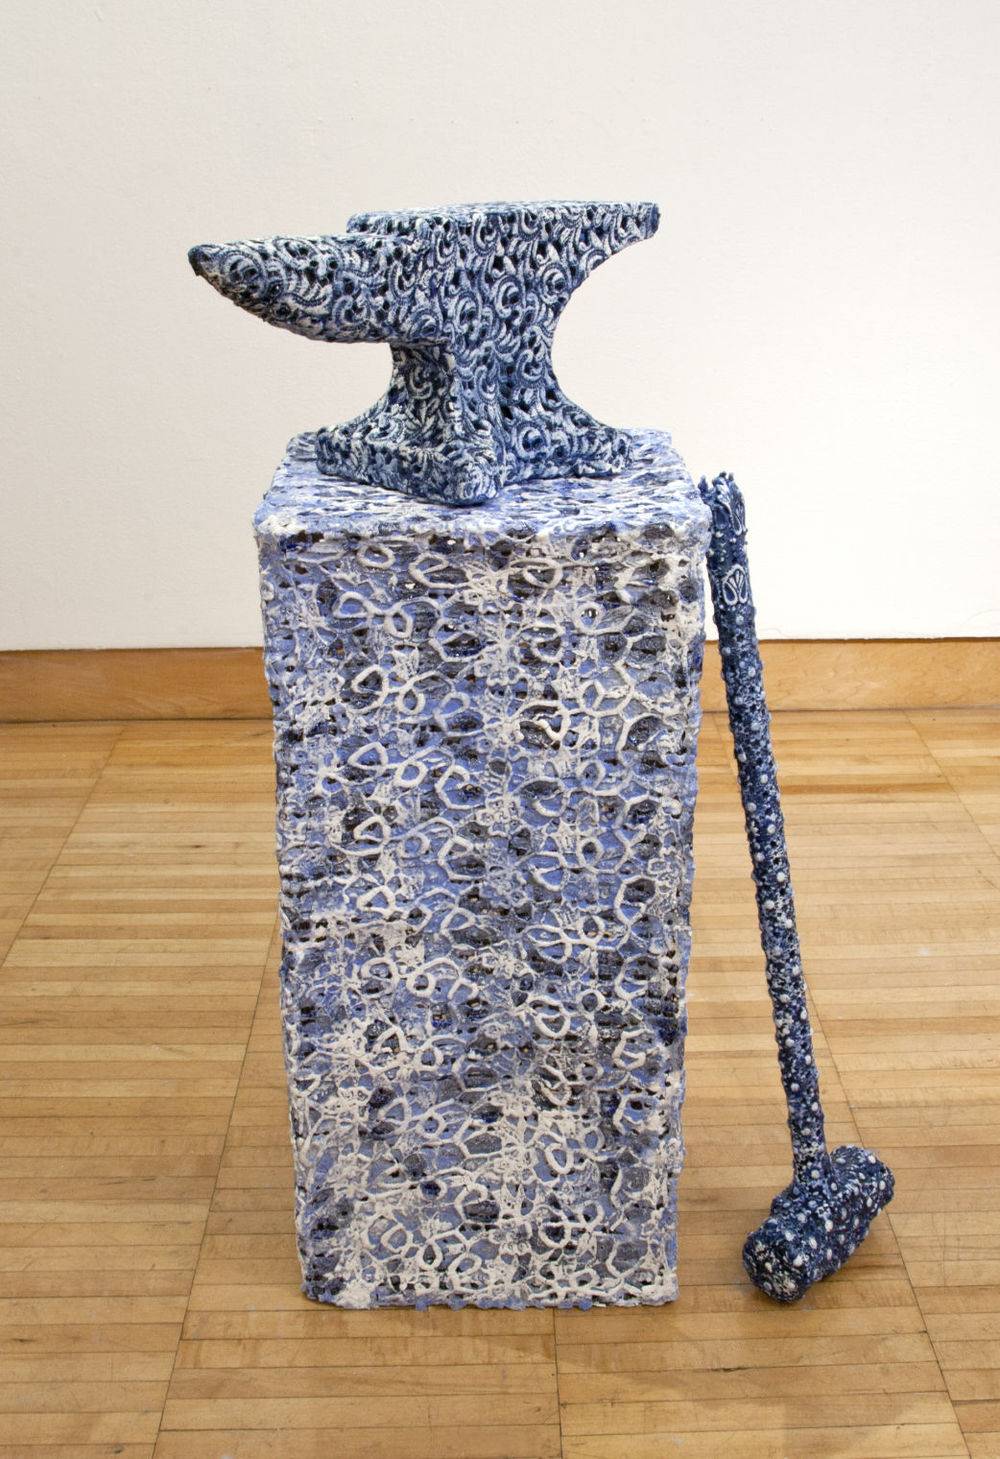 Hammer and Anvil, 2013, Porcelain, underglaze and glaze, 18 x 32 x 13 inches